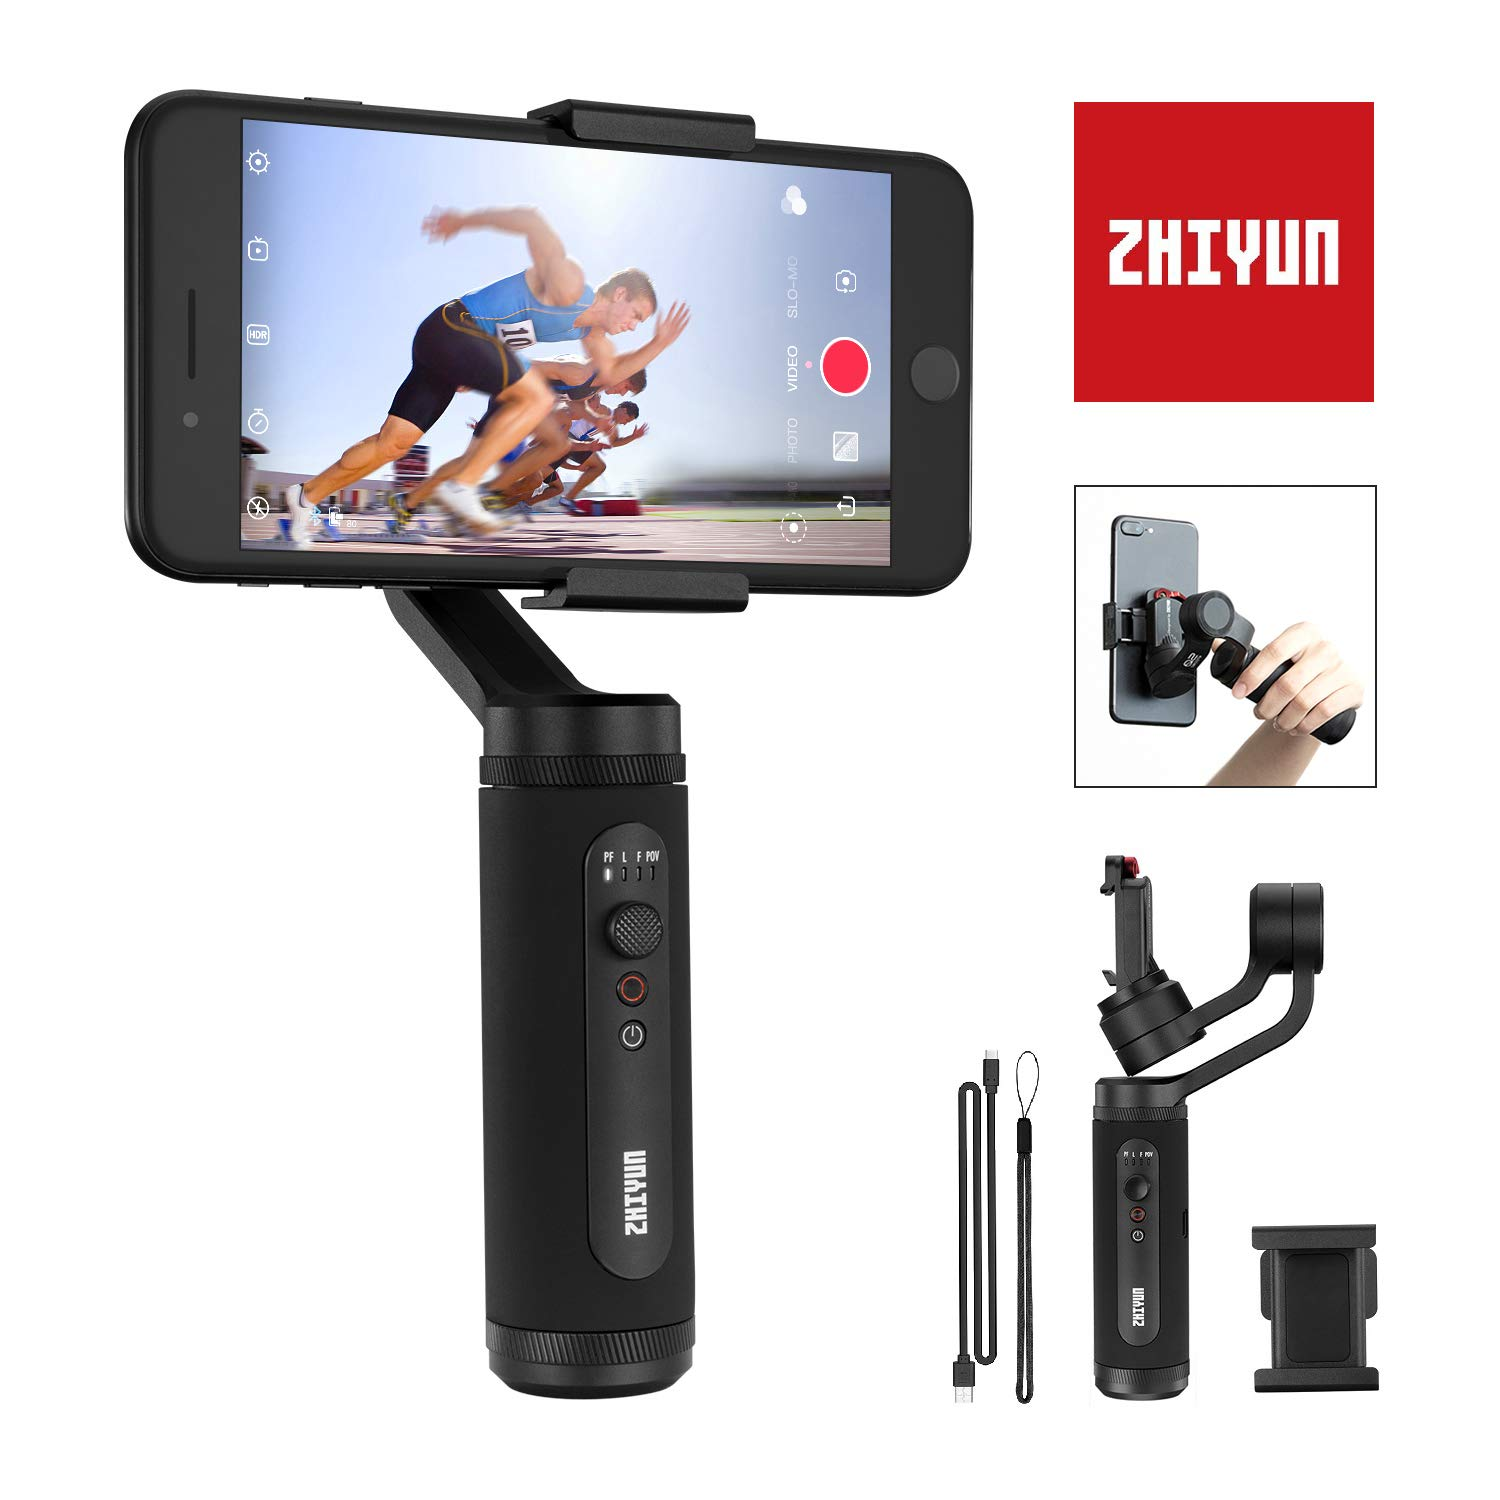 Zhiyun Smooth-Q2 (Official Dealer) 3-axis Smartphones Gimbal Stabilizer, Vortex/POV Mode, 260g Payload, Zhiyun-Smooth-Q2-phone-gimbal-stabilizer by zhi yun